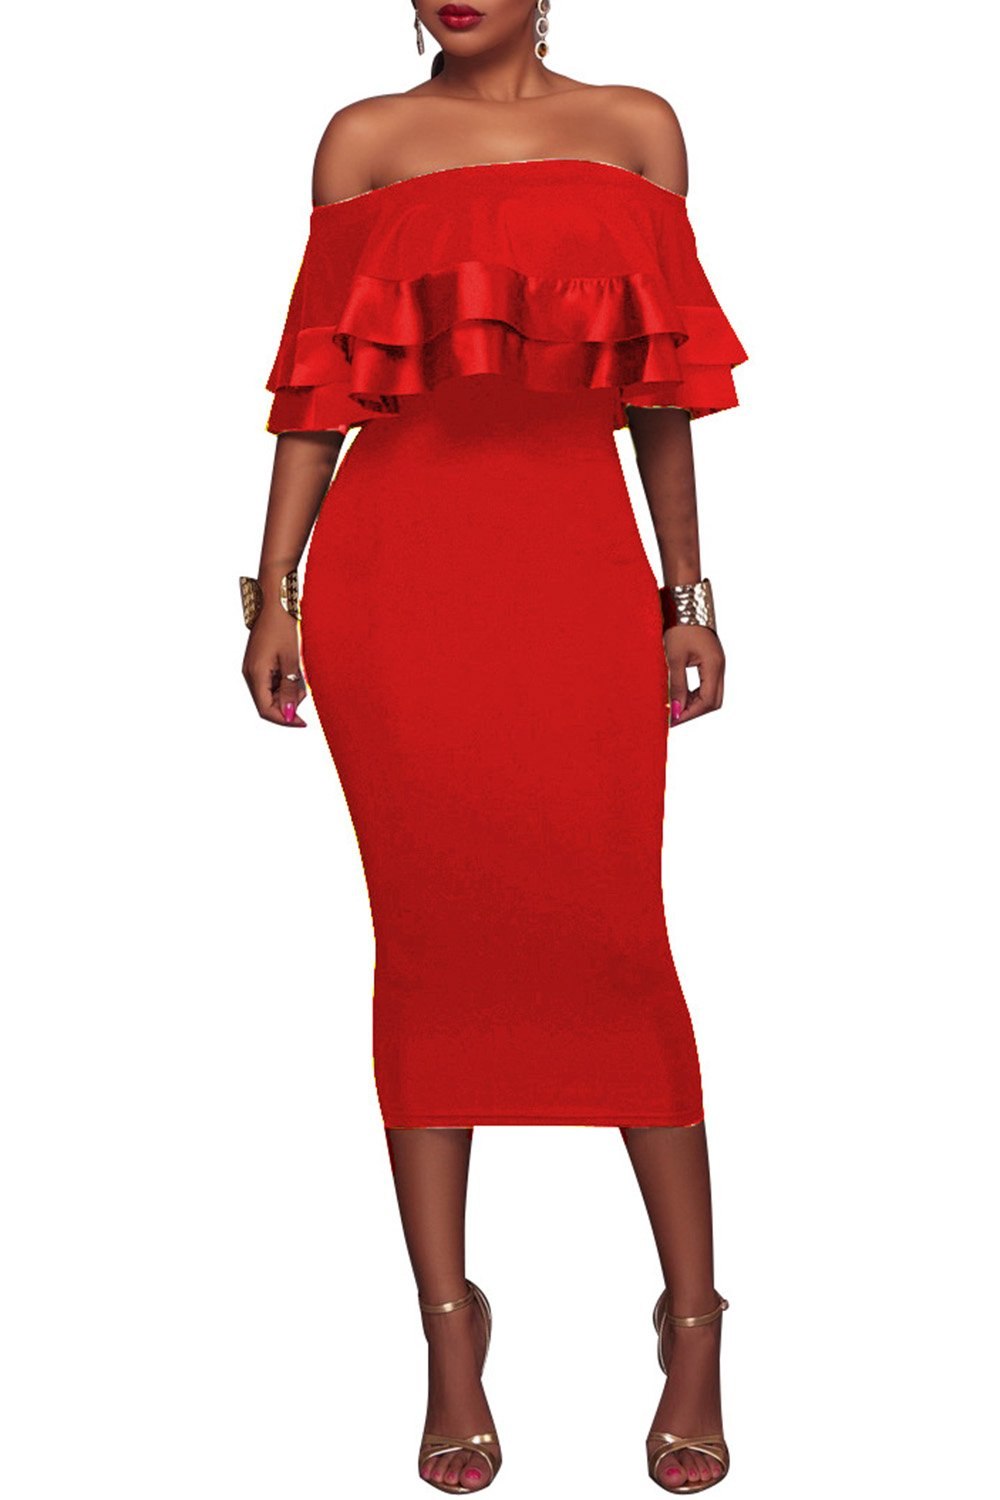 9a22e84b02ef6 Wonderoy Women s Ruffles Off Shoulder Fitted Club Party Cocktail Bodycon  Midi Dress L Red   Departments   Clothing